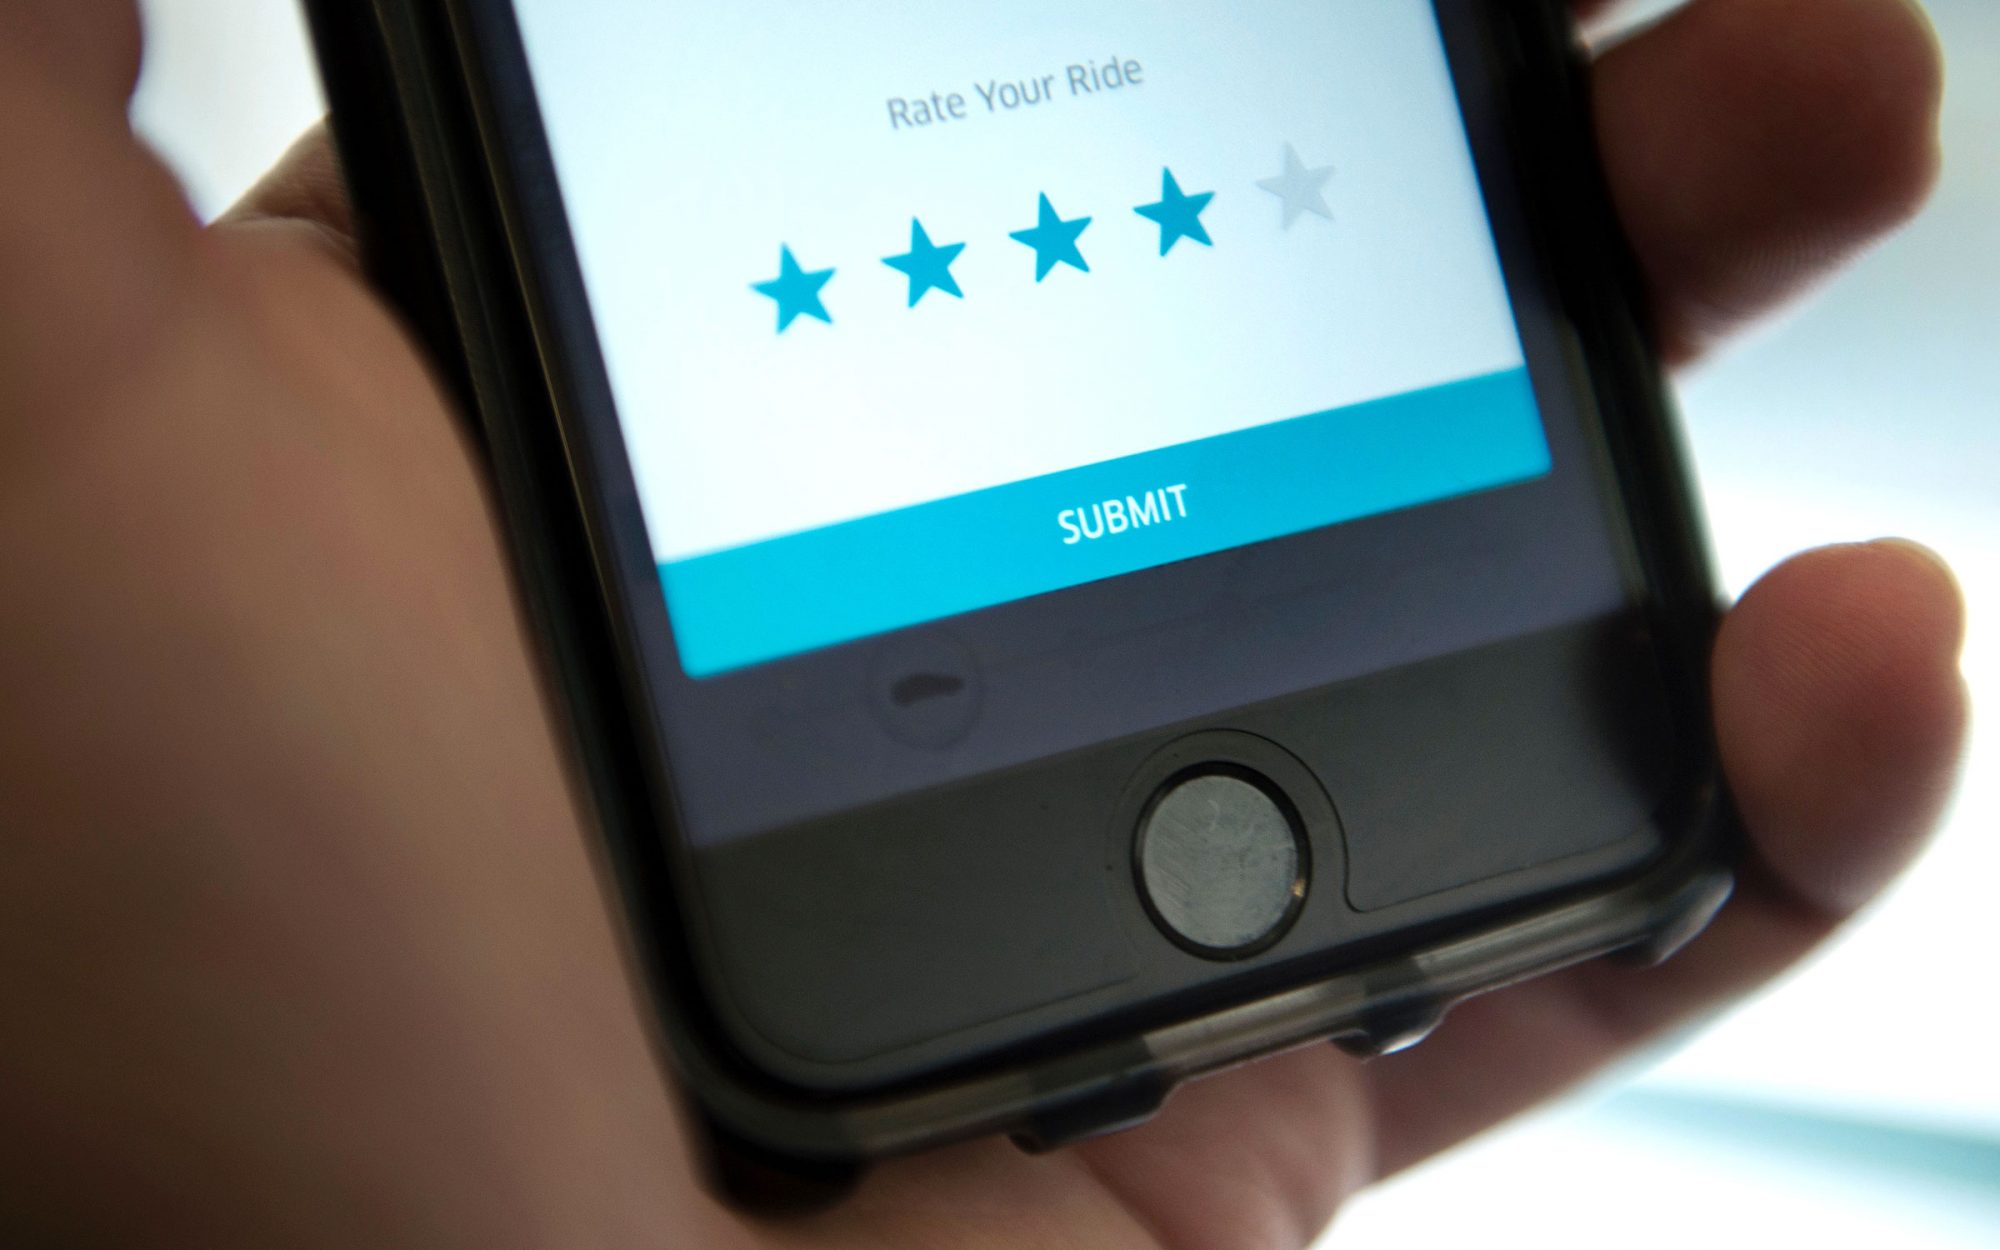 How to Find and Improve Your Uber Rating